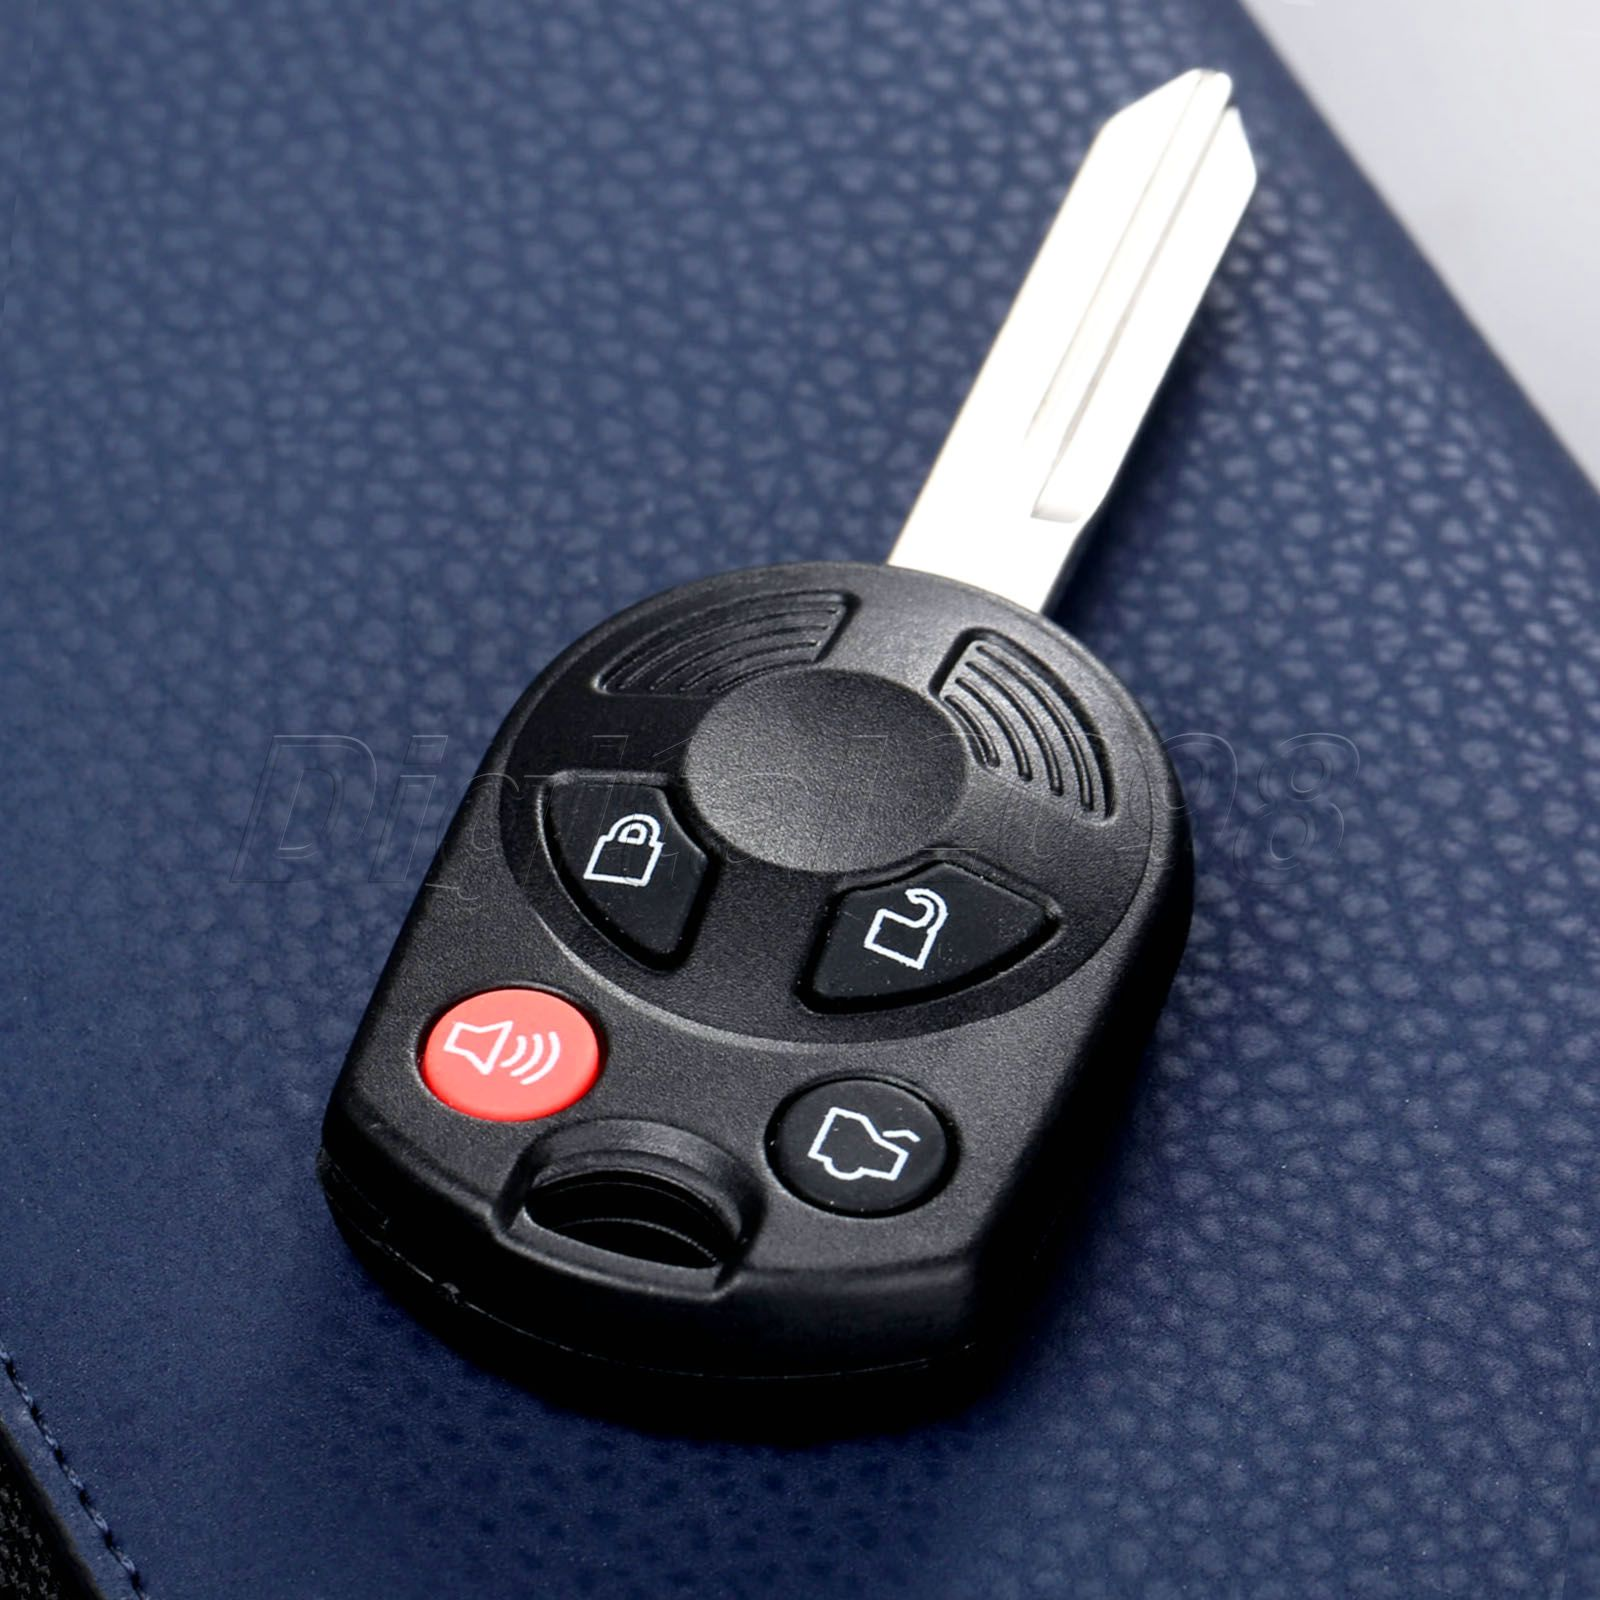 Auto Replacement Parts Keyecu Remote Car Key Fob 4 Button 433mhz Pcf7941 Chip Semi-intelligent For Renault Megane Iii 2009-2014 Uncut Blade Soft And Light